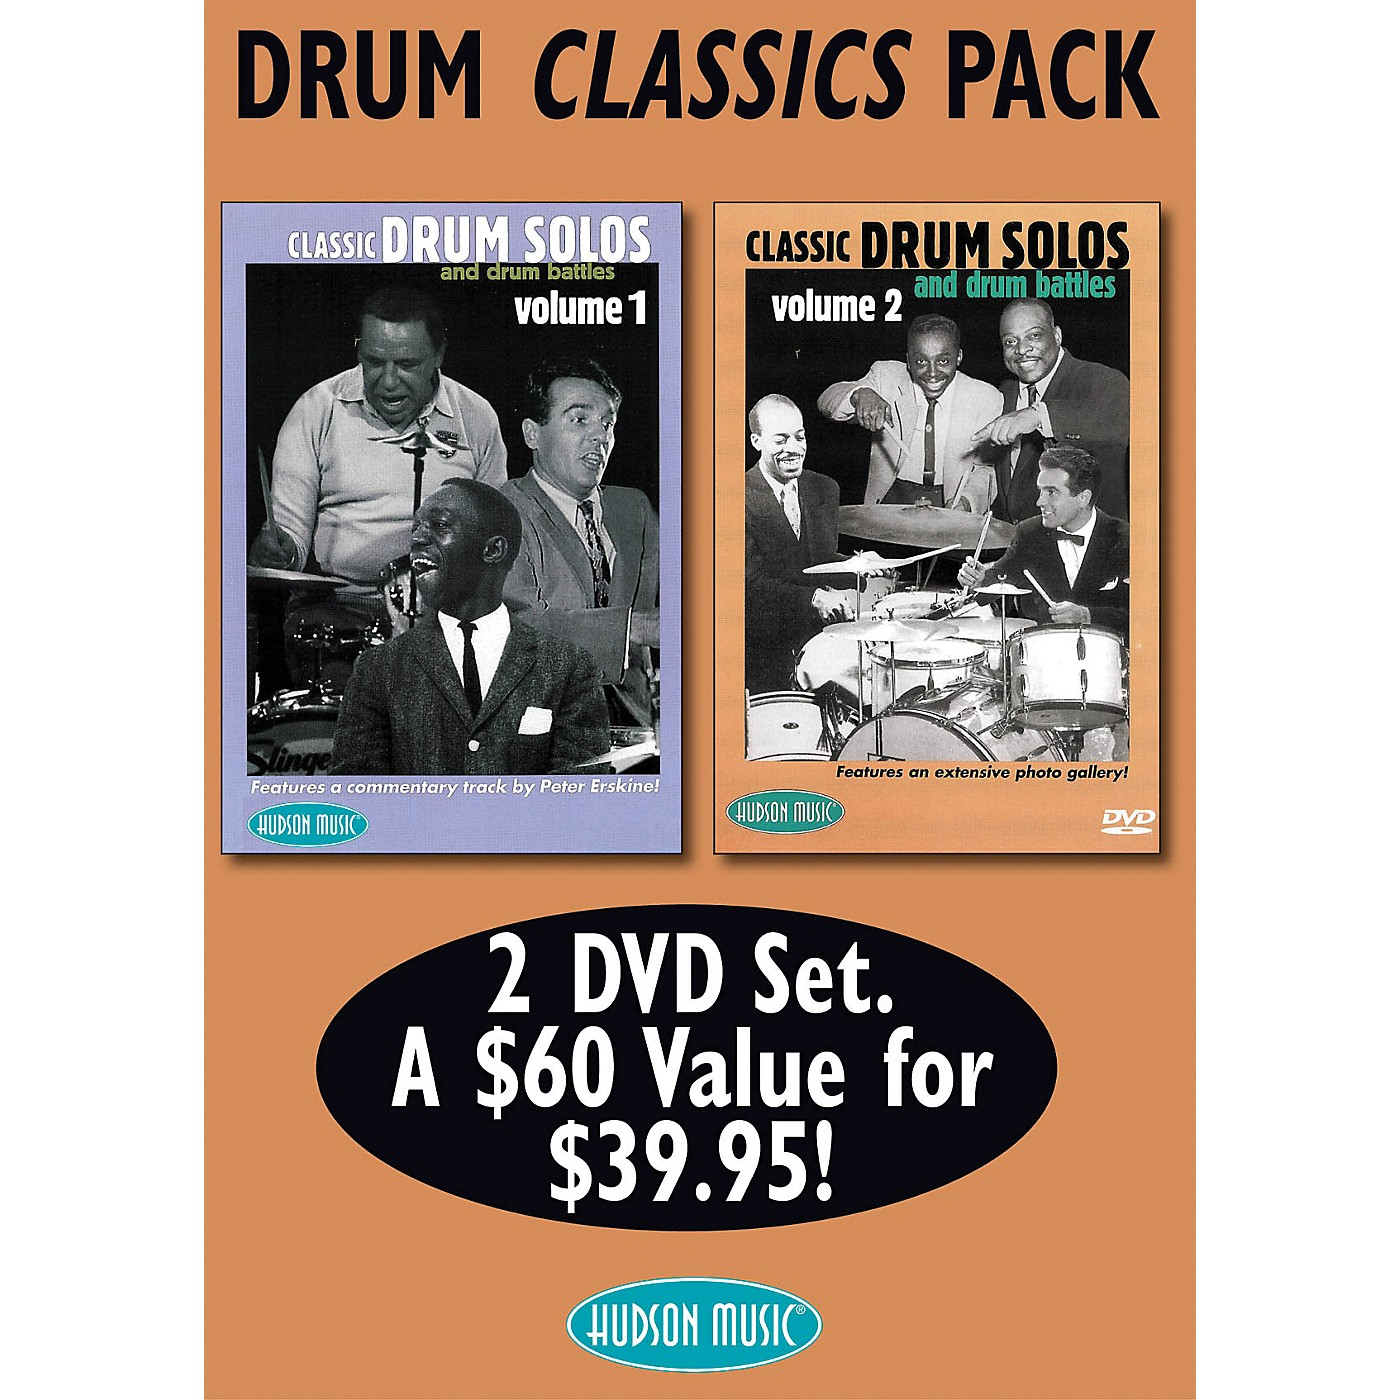 Hudson Music Drum Classics Pack 2 DVD Set - Classic Drum Solos and Drum Battles, Volumes 1 and 2 thumbnail